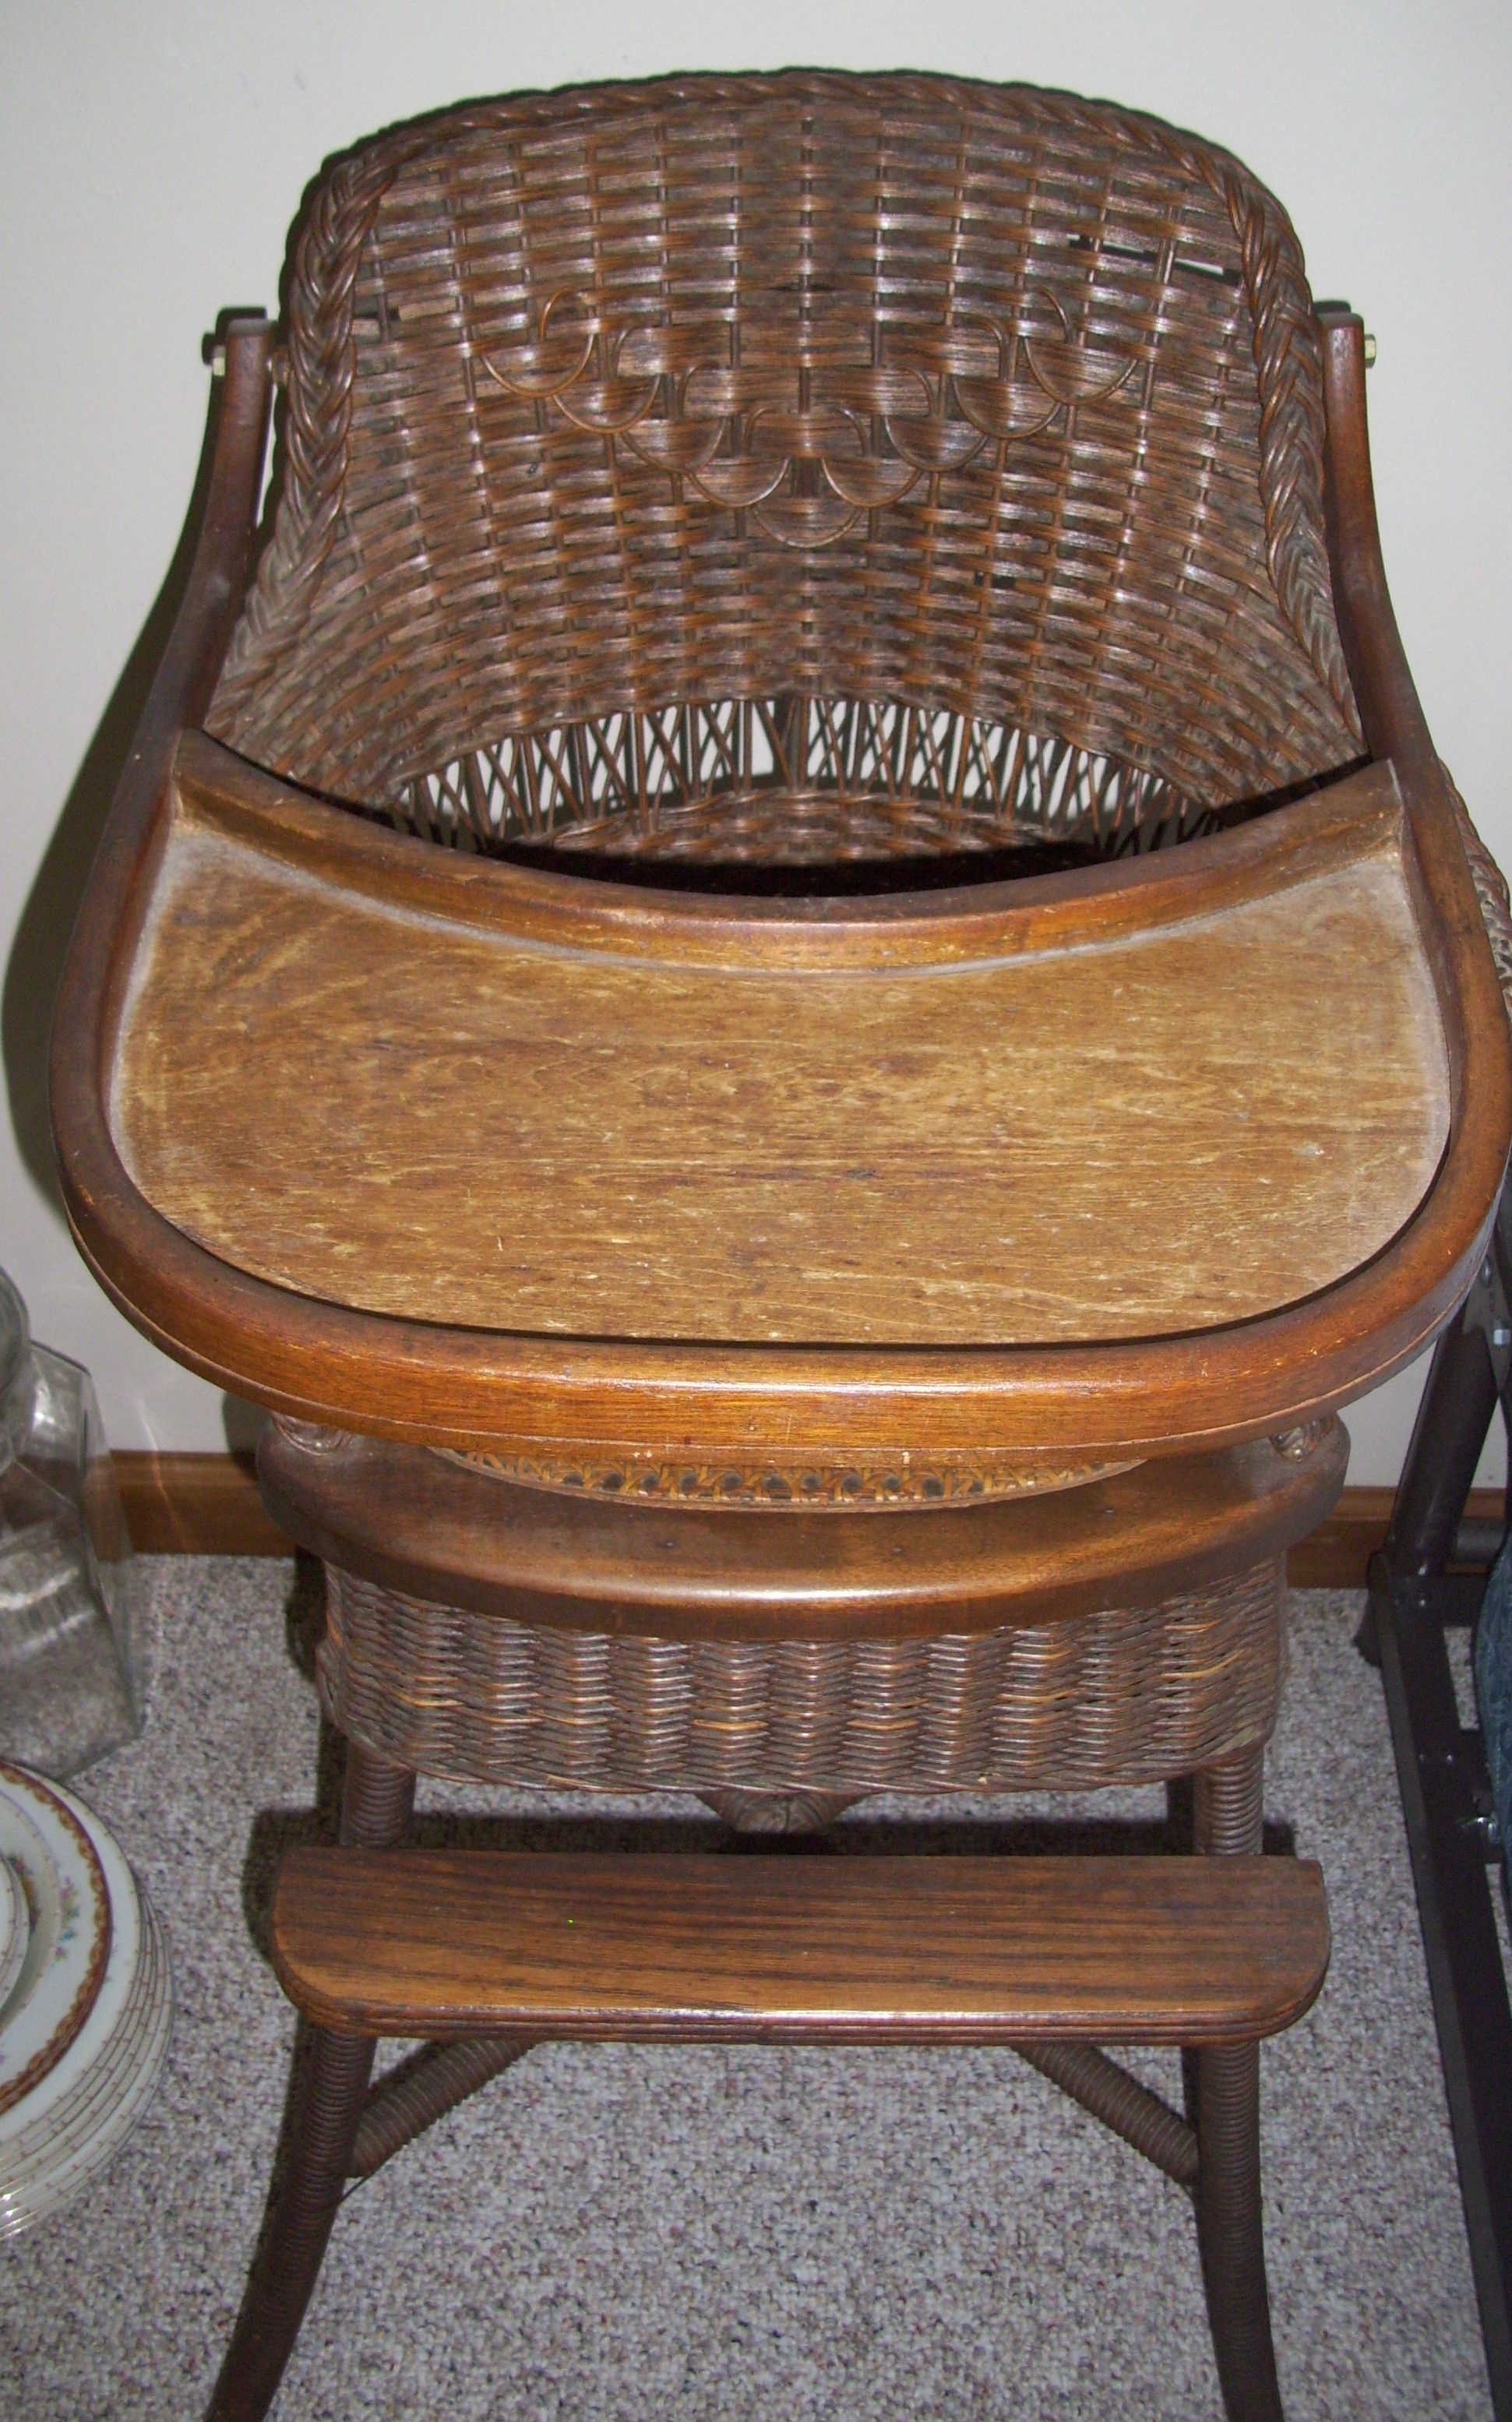 Antique Wicker High Chair | Things I Love! | Pinterest | High Chairs Pertaining To Antique Wicker Rocking Chairs With Springs (#5 of 15)